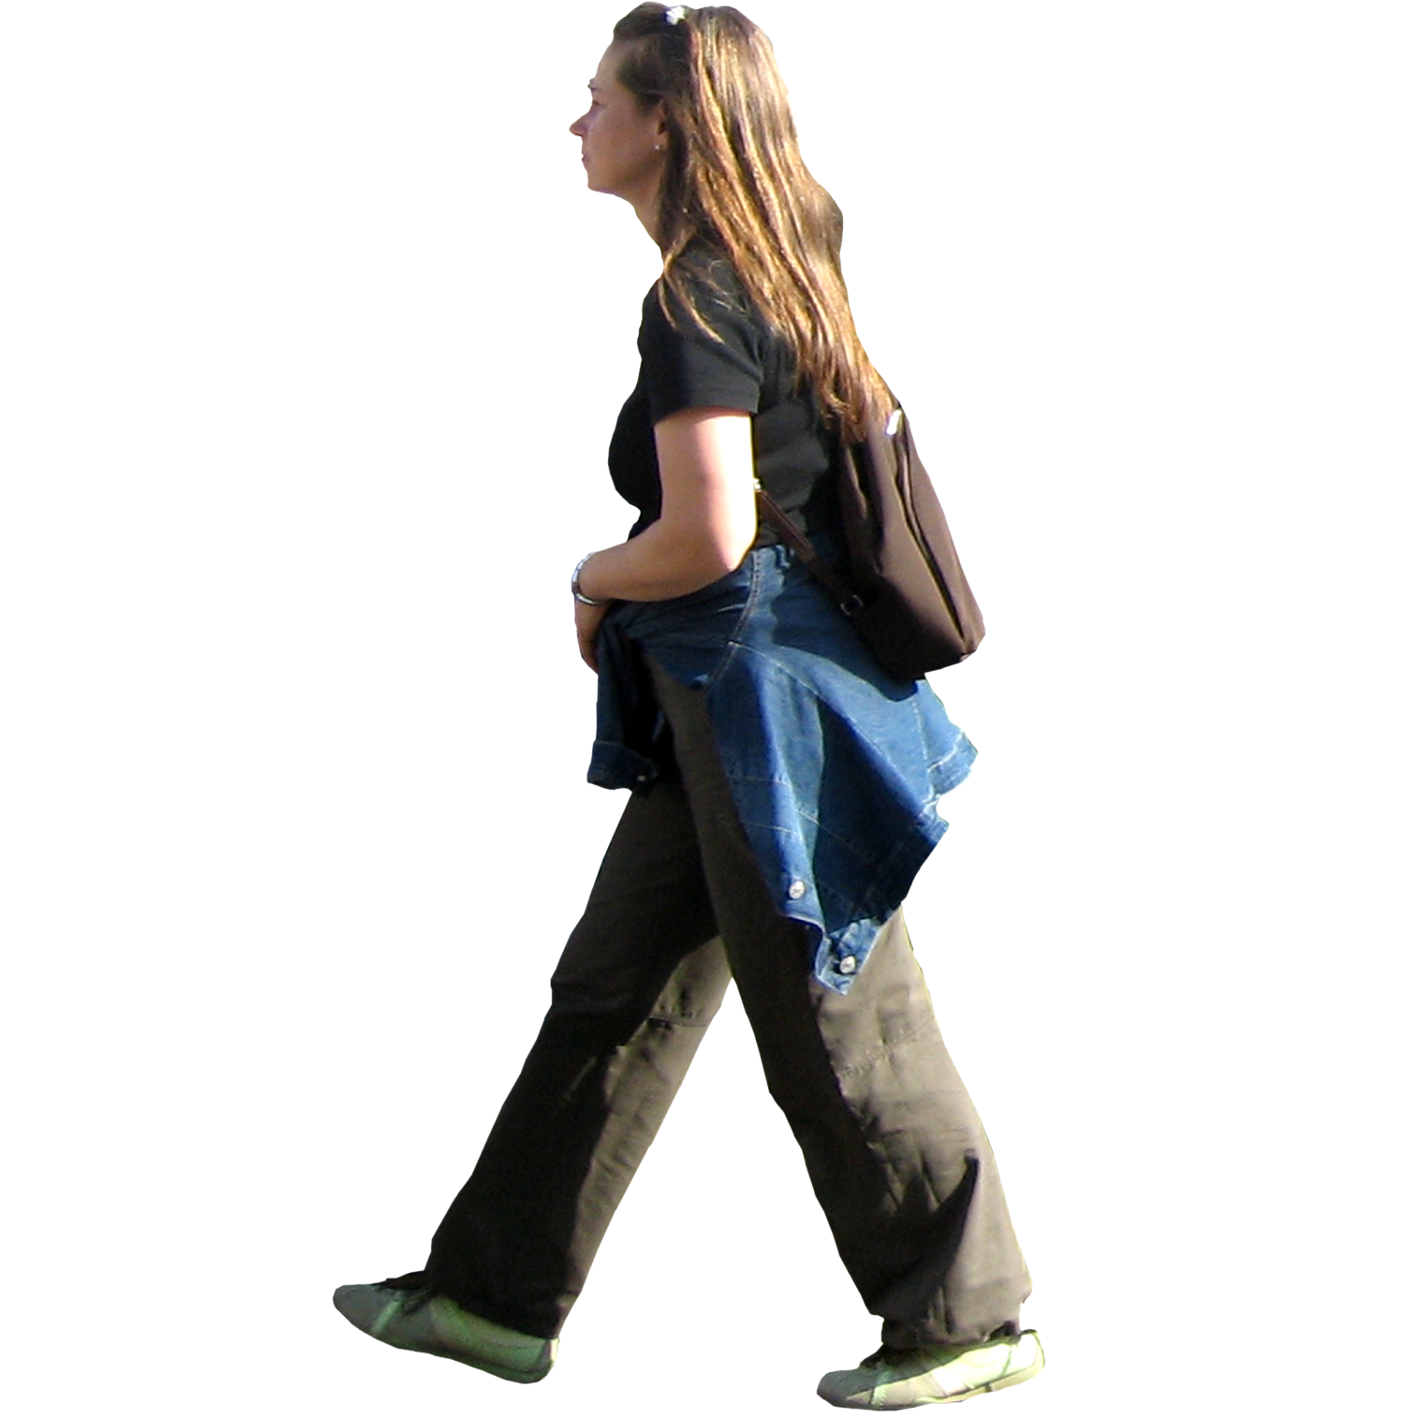 Person walking side view png. Walk image mart